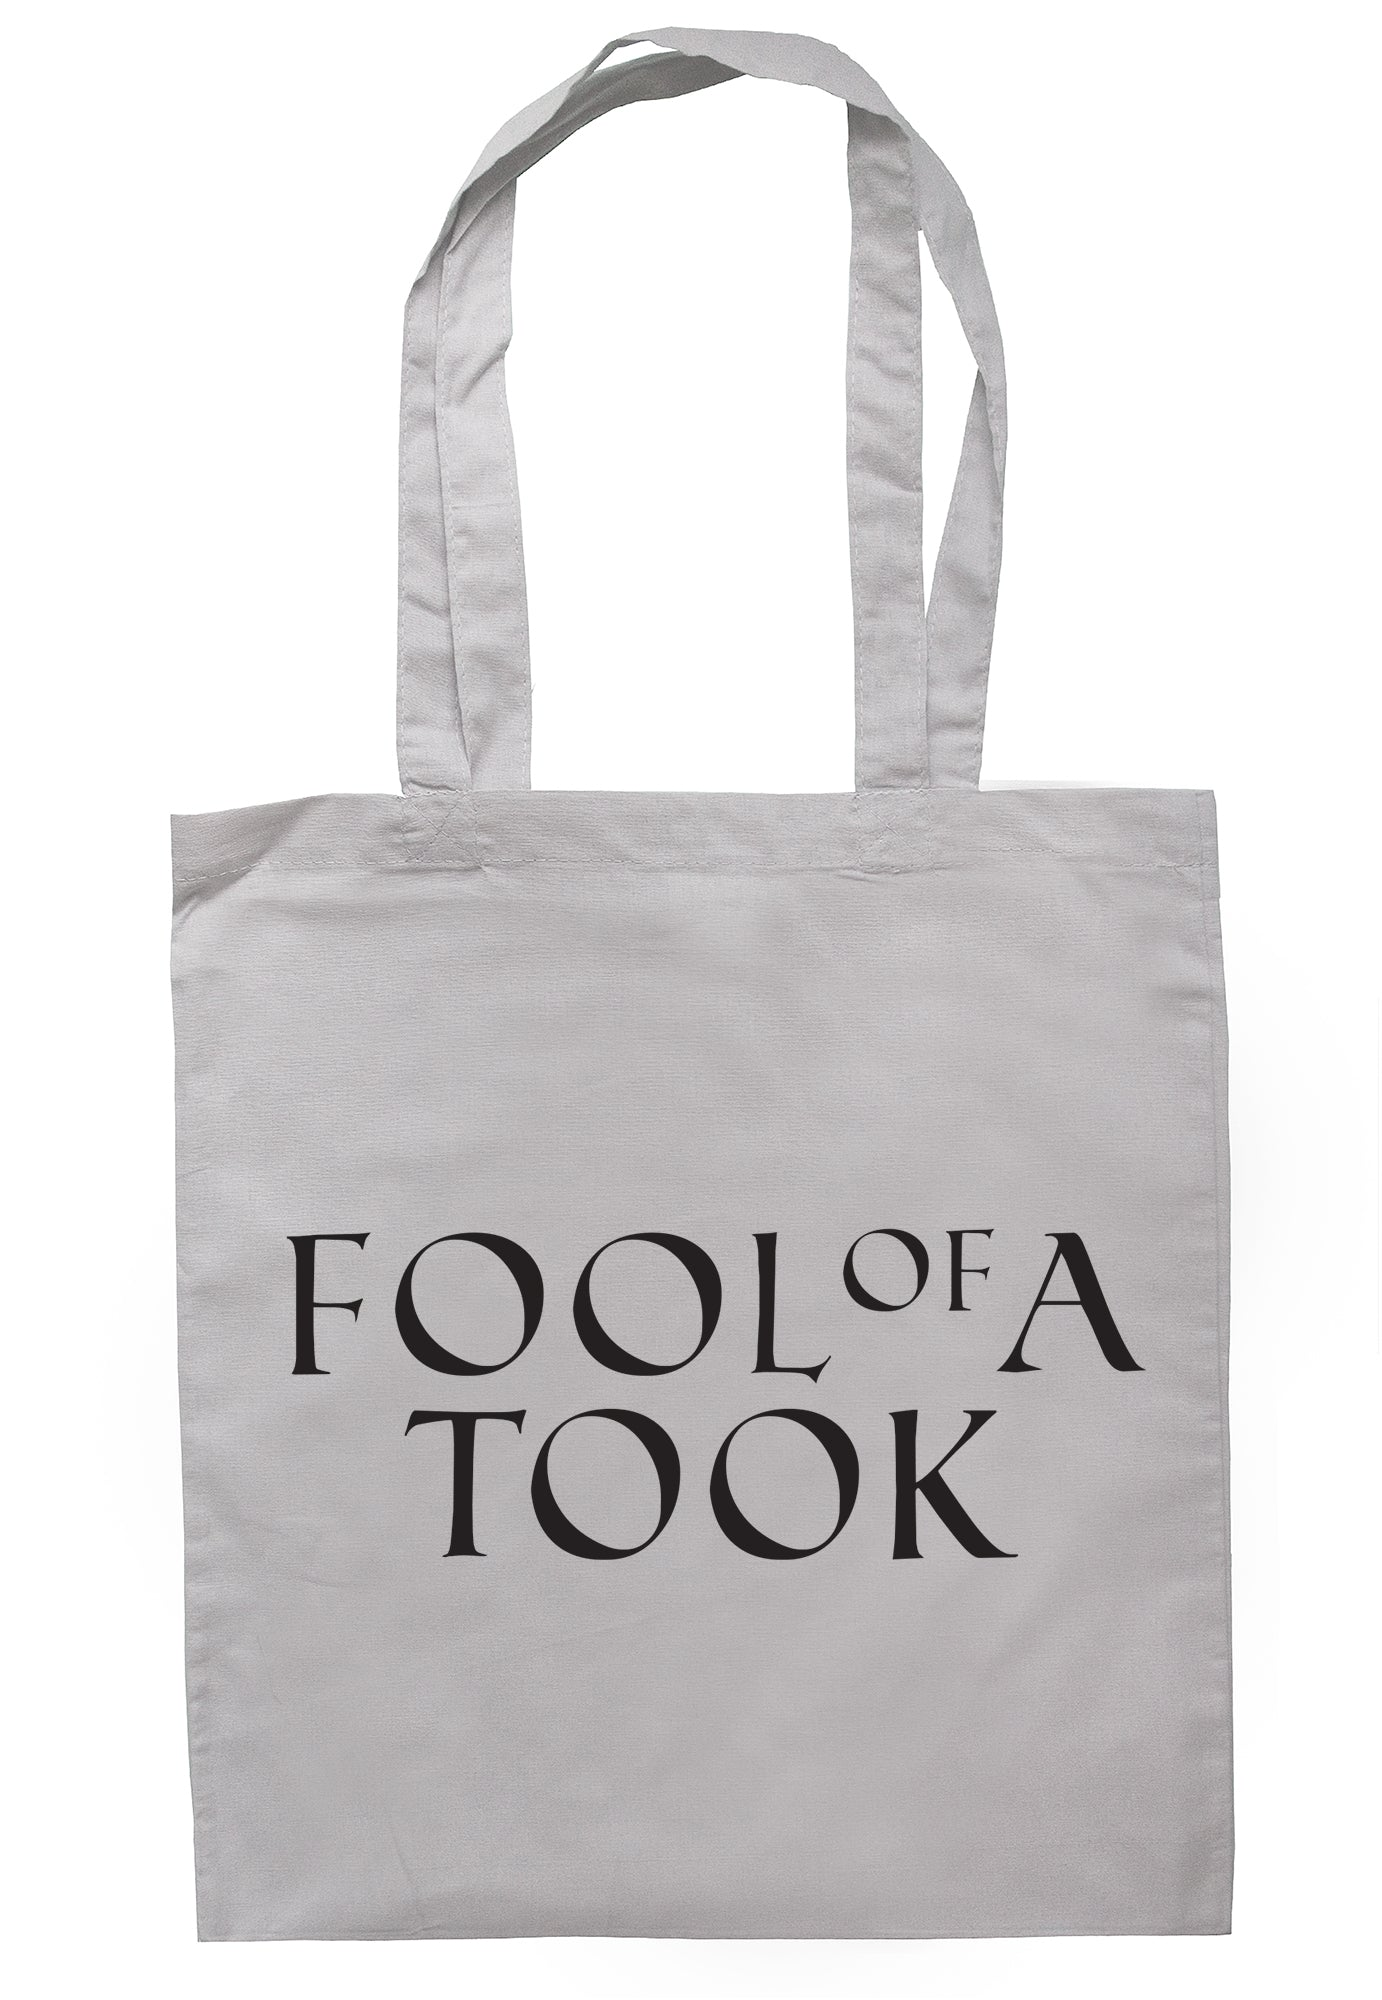 Fool Of A Took Tote Bag S0288 - Illustrated Identity Ltd.